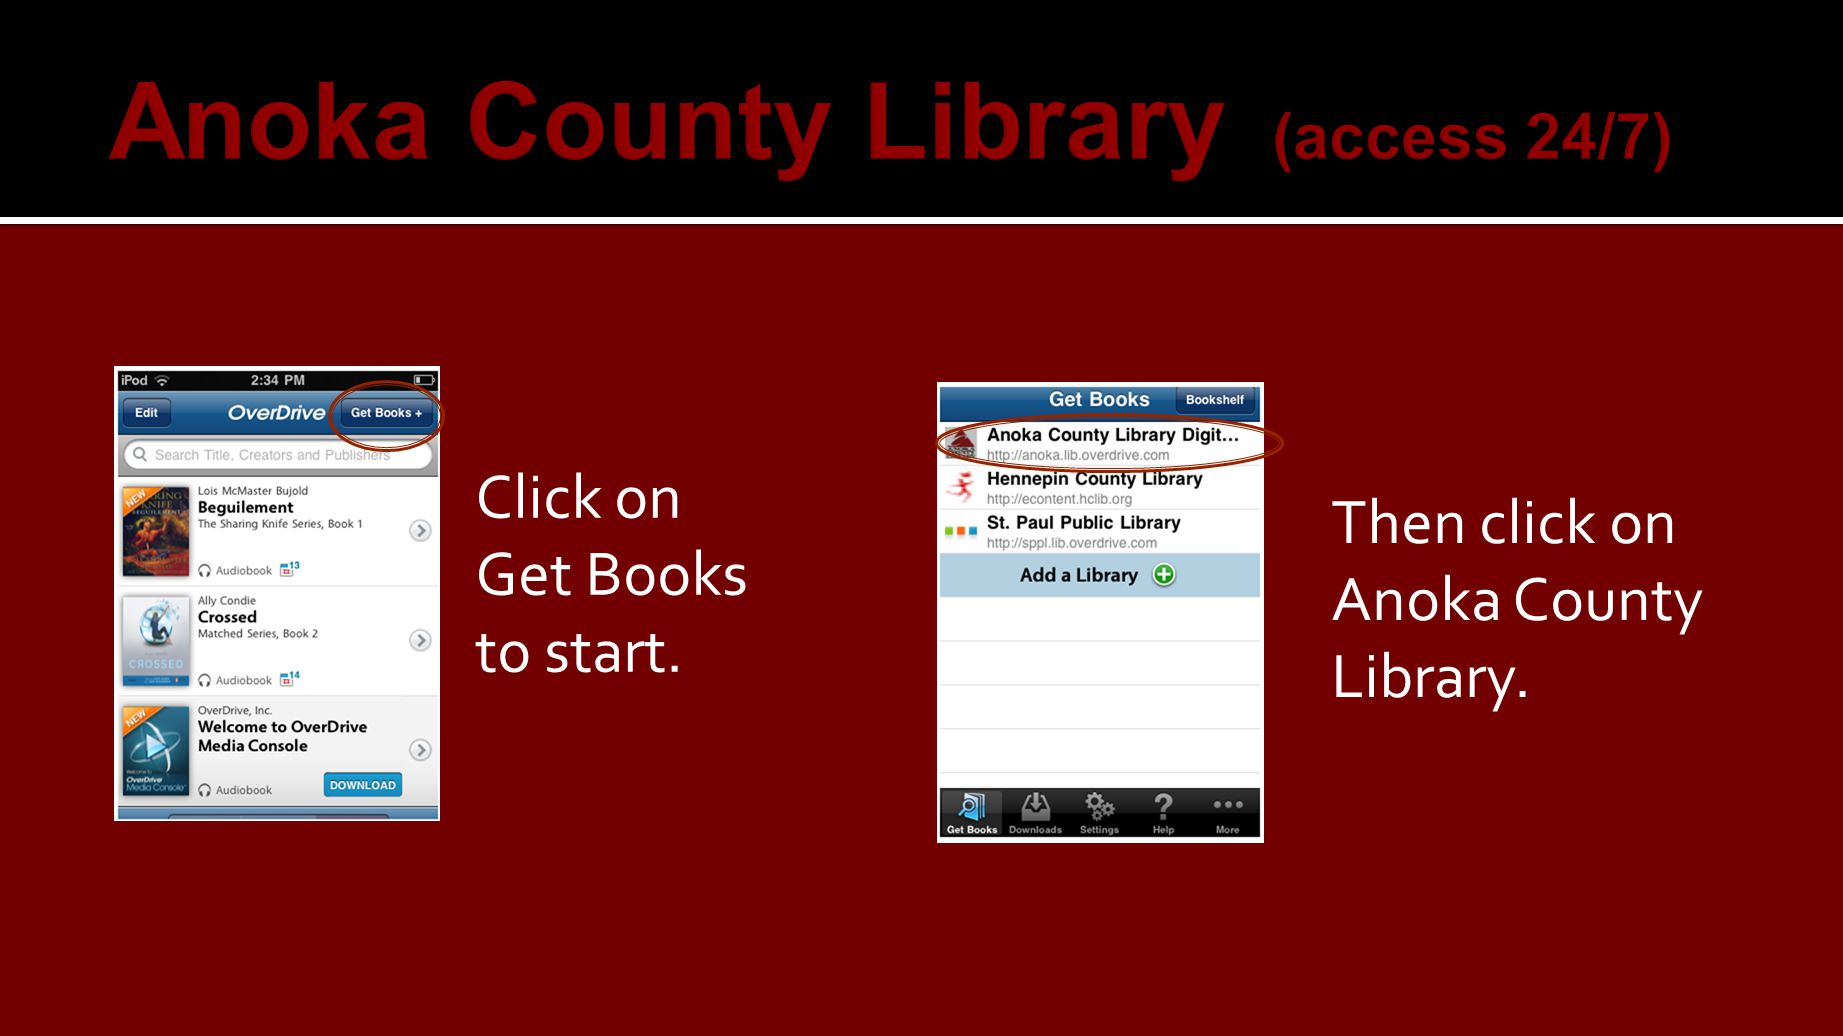 Click on Get Books to start. Then click on Anoka County Library.